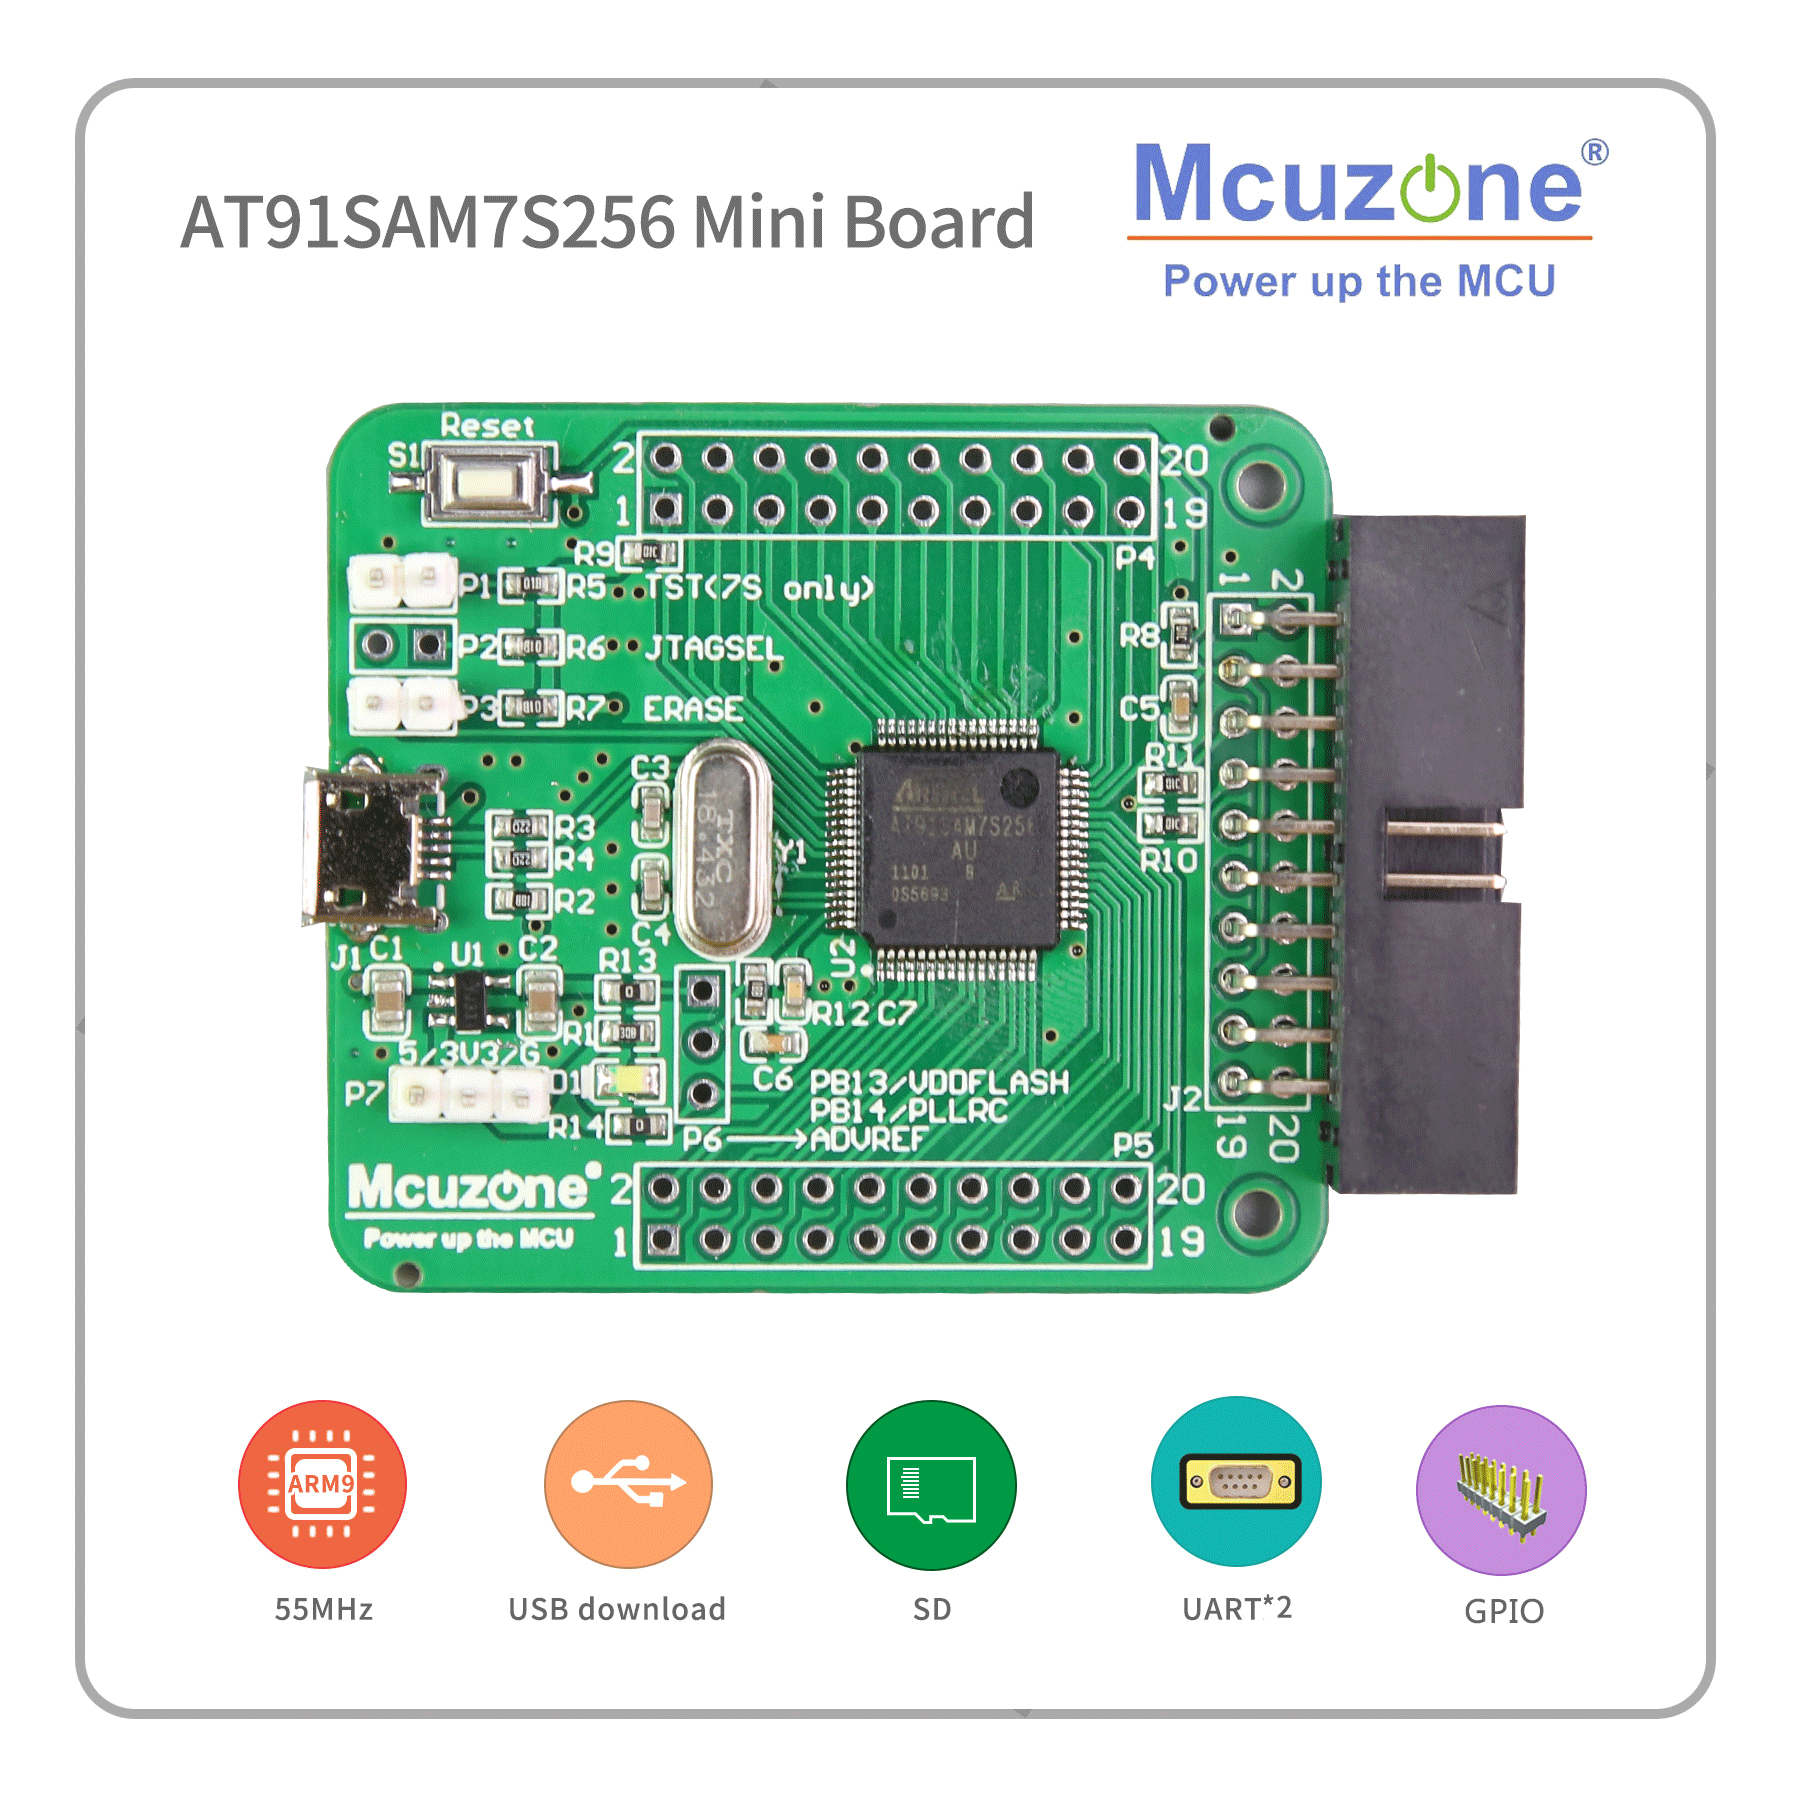 AT91SAM7S256 Mini Board (ARM7 Development Kit) 7S256 SAM7S256